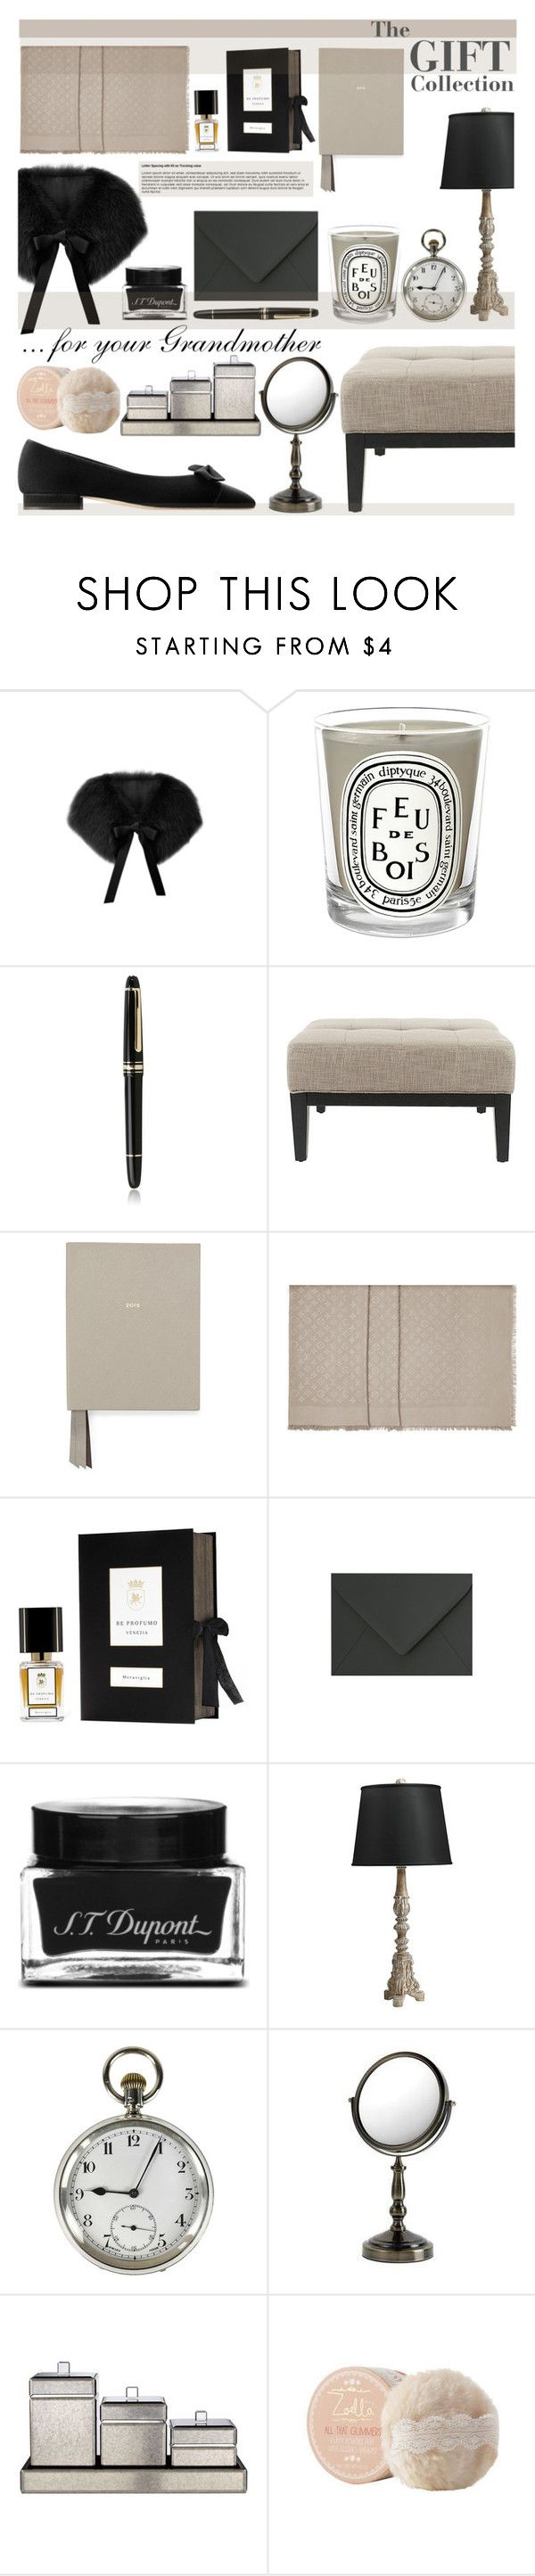 """""""The Christmas Gift Collection - for your Grandmother. (GiftGuide Part IX)"""" by sophie-martina ❤ liked on Polyvore featuring interior, interiors, interior design, home, home decor, interior decorating, Elie Saab, Chanel, Diptyque and Montblanc"""